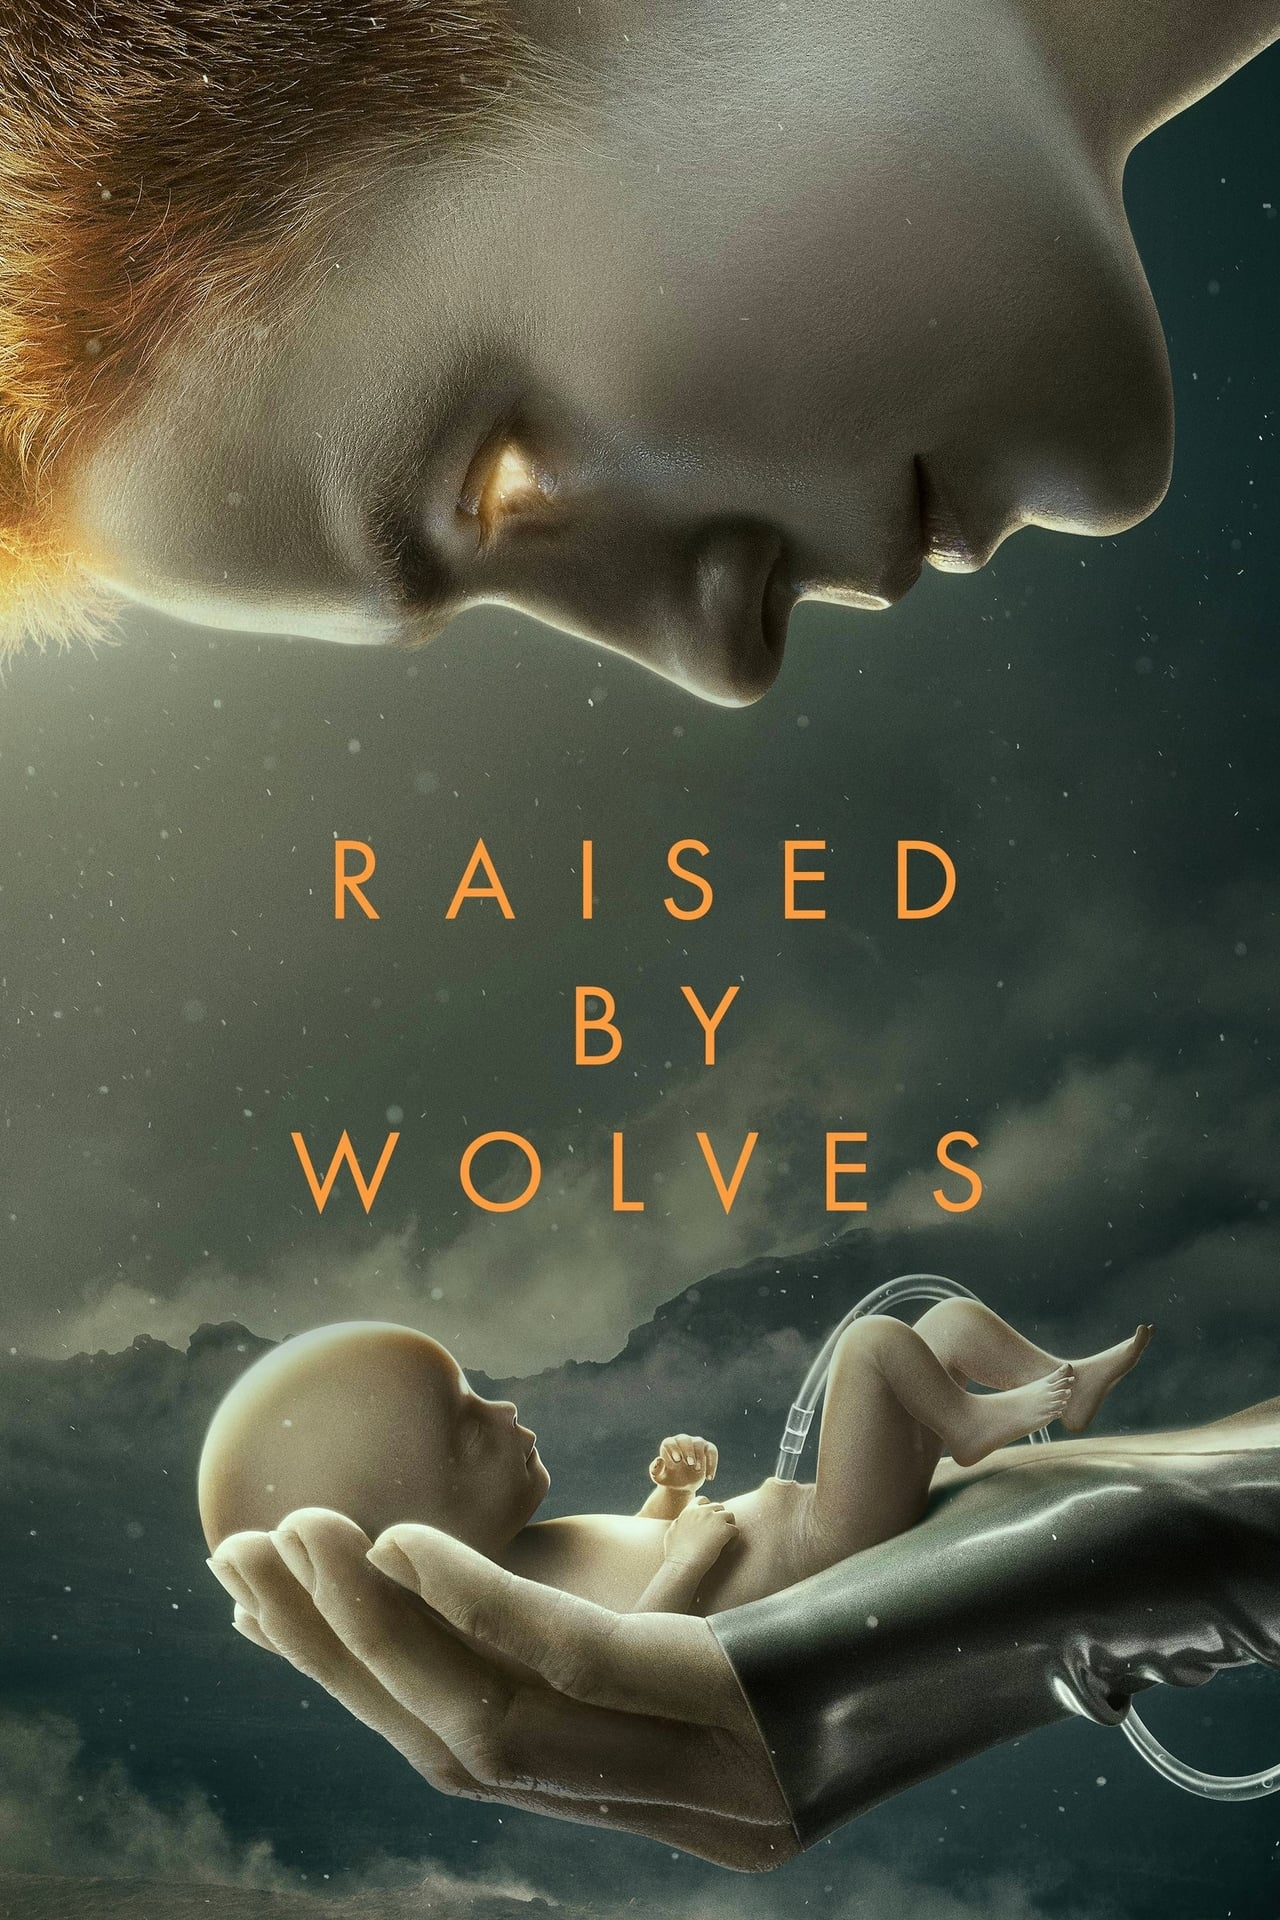 Raised by Wolves (season 1)